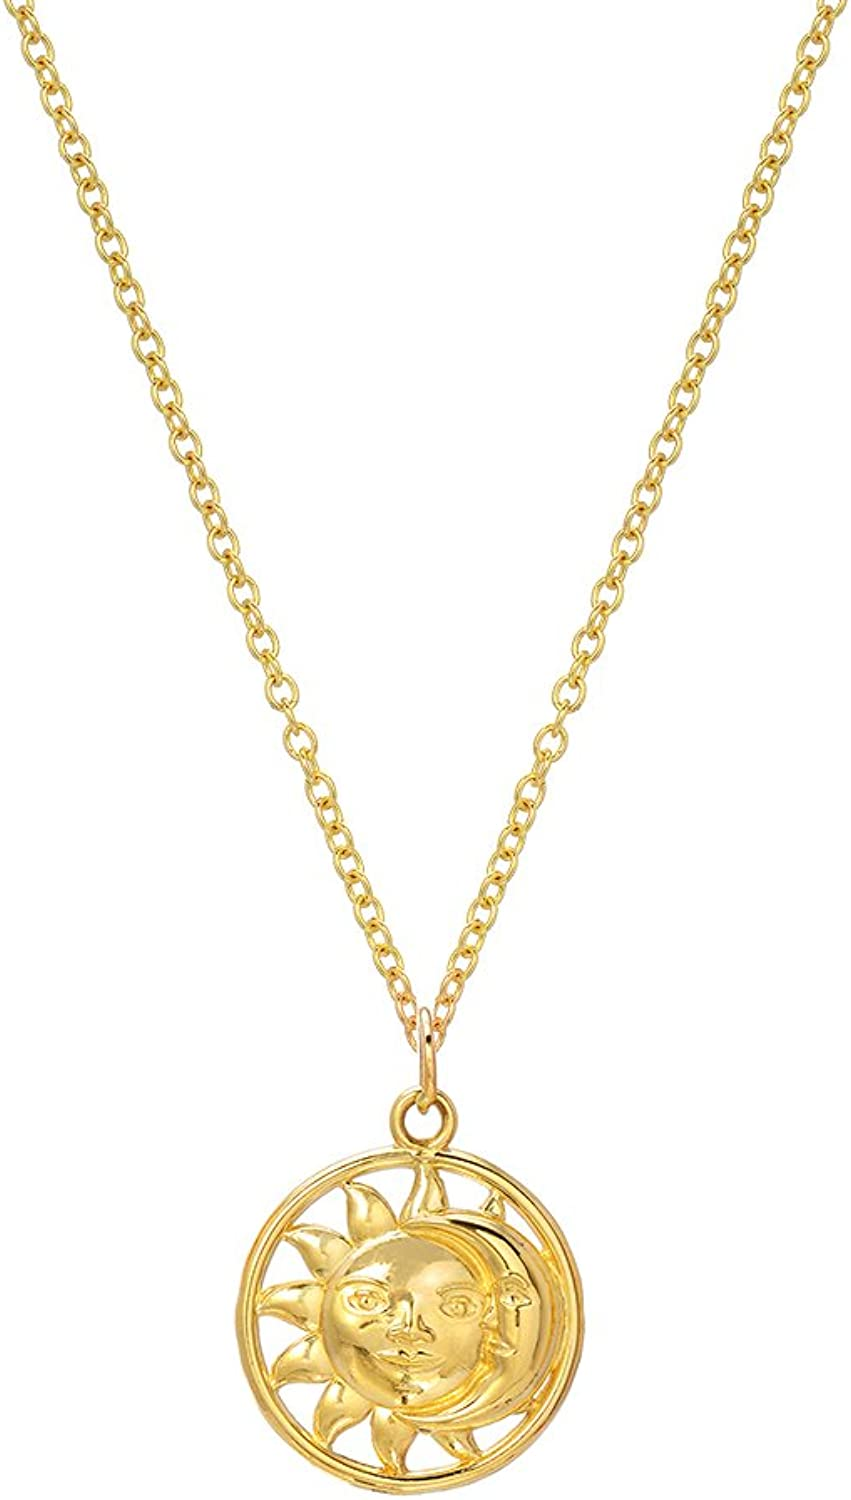 14K Yellow gold Celestial Moon and Smilling Sun Pendant Necklace, 18